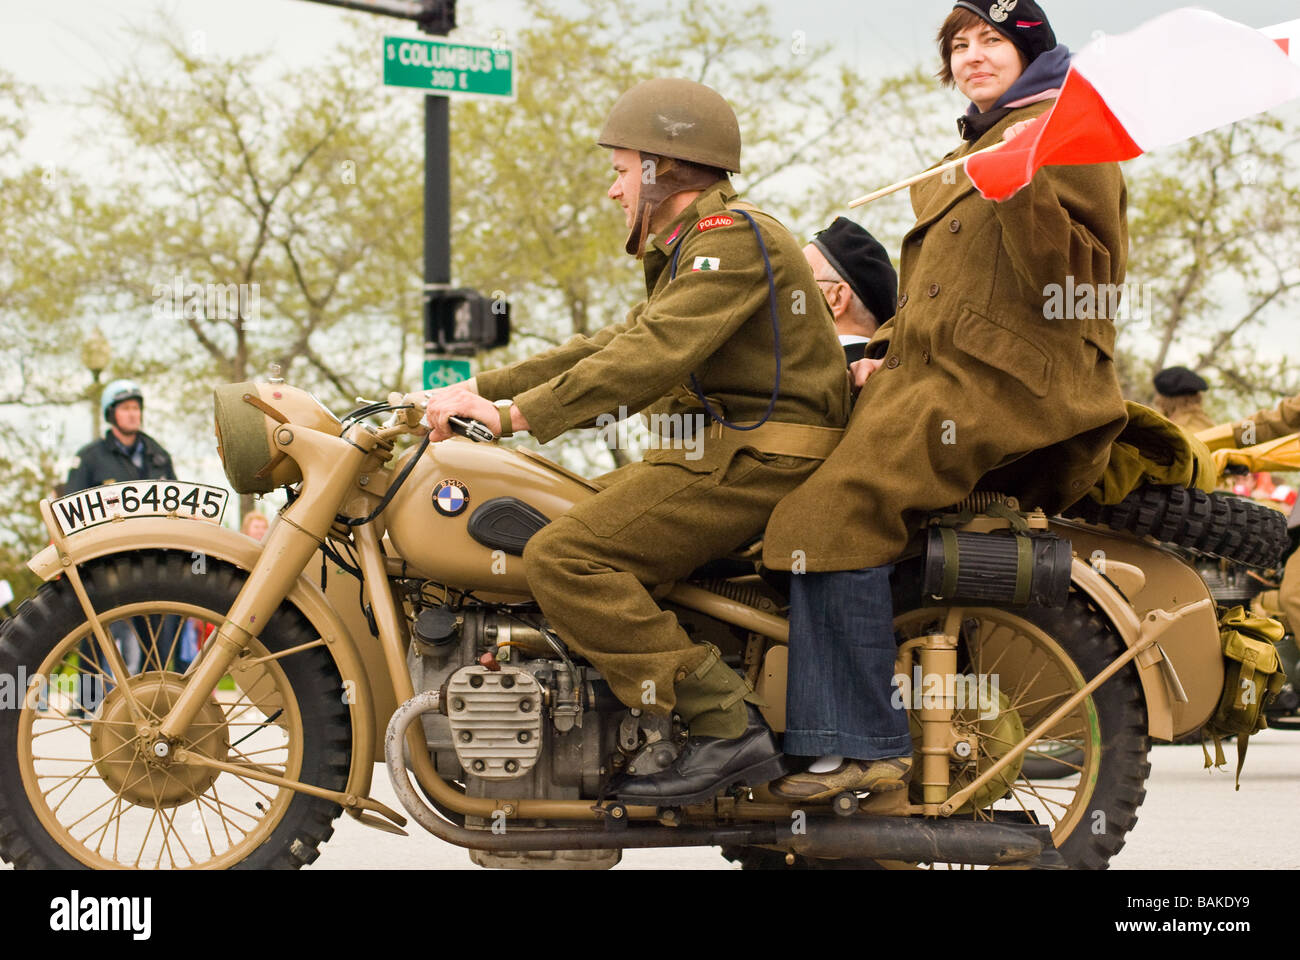 Man and woman in vintage Polish army uniform clothing riding antique motorcycle in Chicago Polish Parade Stock Photo